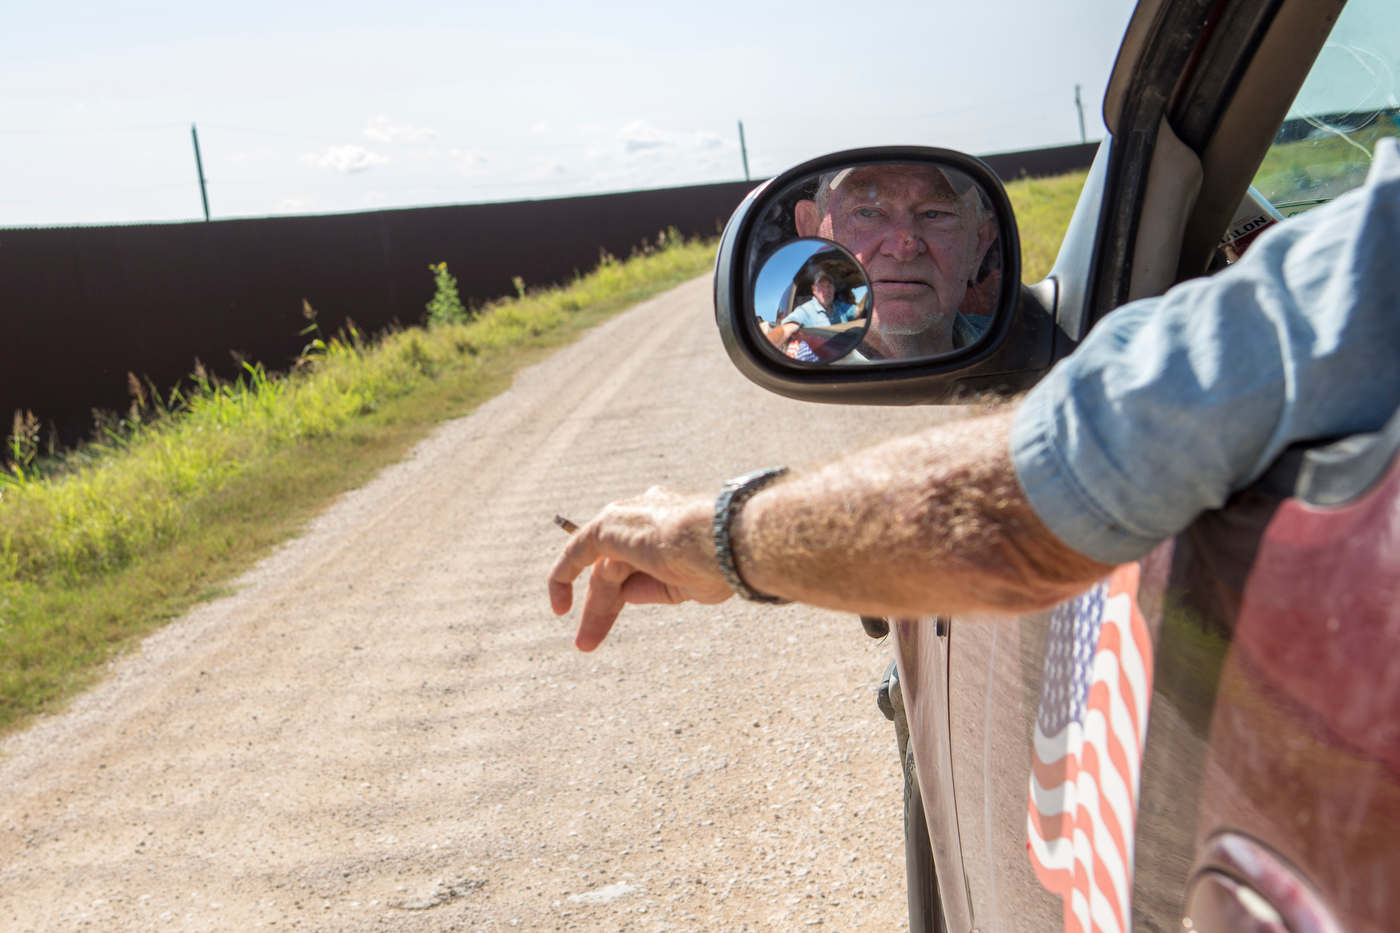 Rusty Monsees, an anti-immigration activist whose land is cut in half by the border wall, drives on his property between the fence and the Rio Grande, a no man's land.